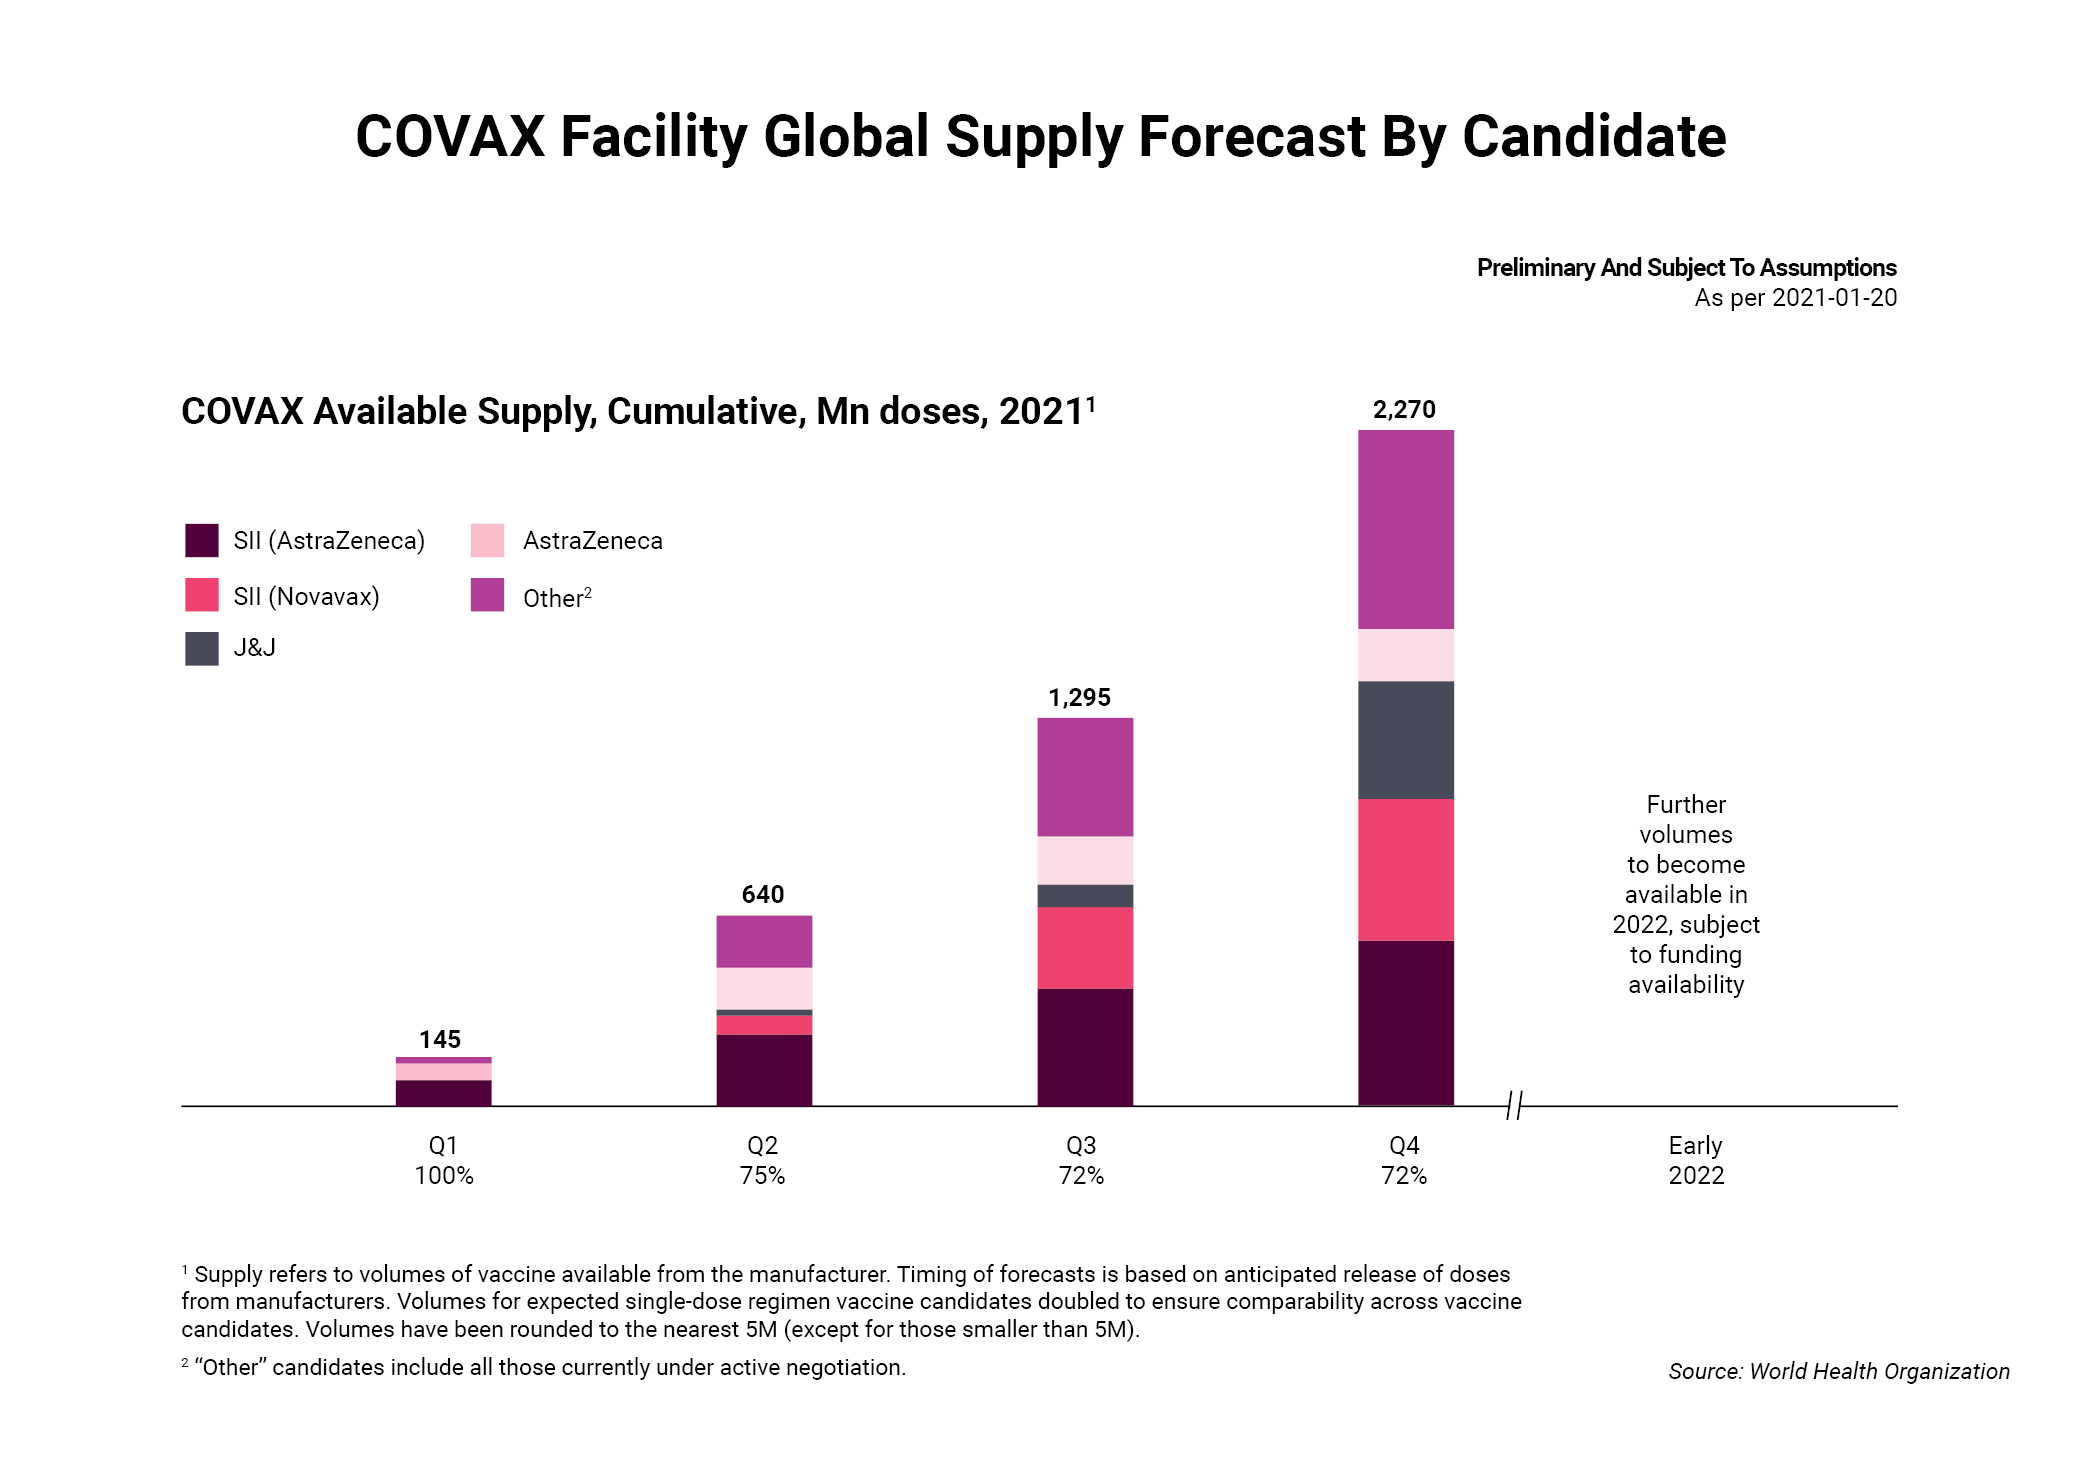 COVAX Facility Global Supply Forecast By Candidate